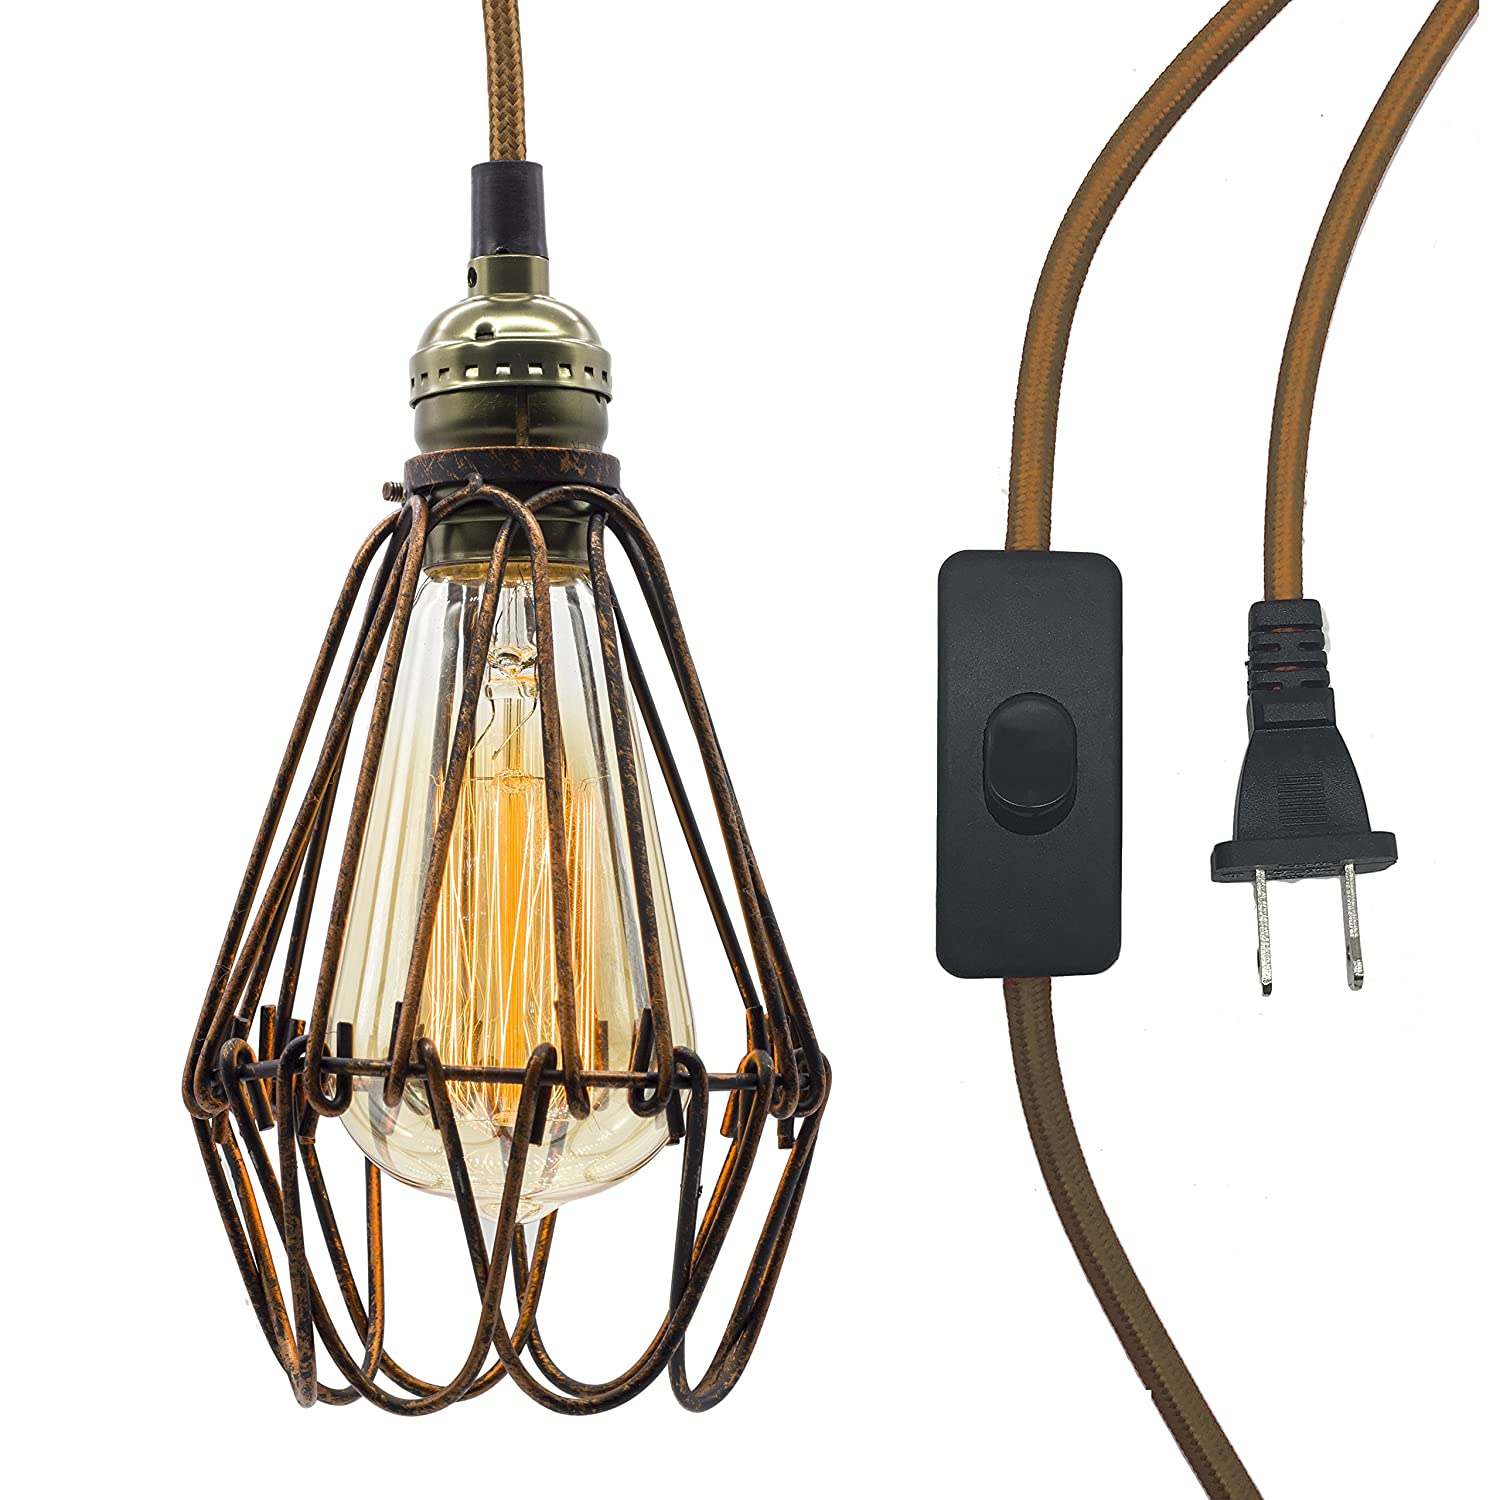 Ceiling Pendant Light With Cage And Switch Vintage Hanging